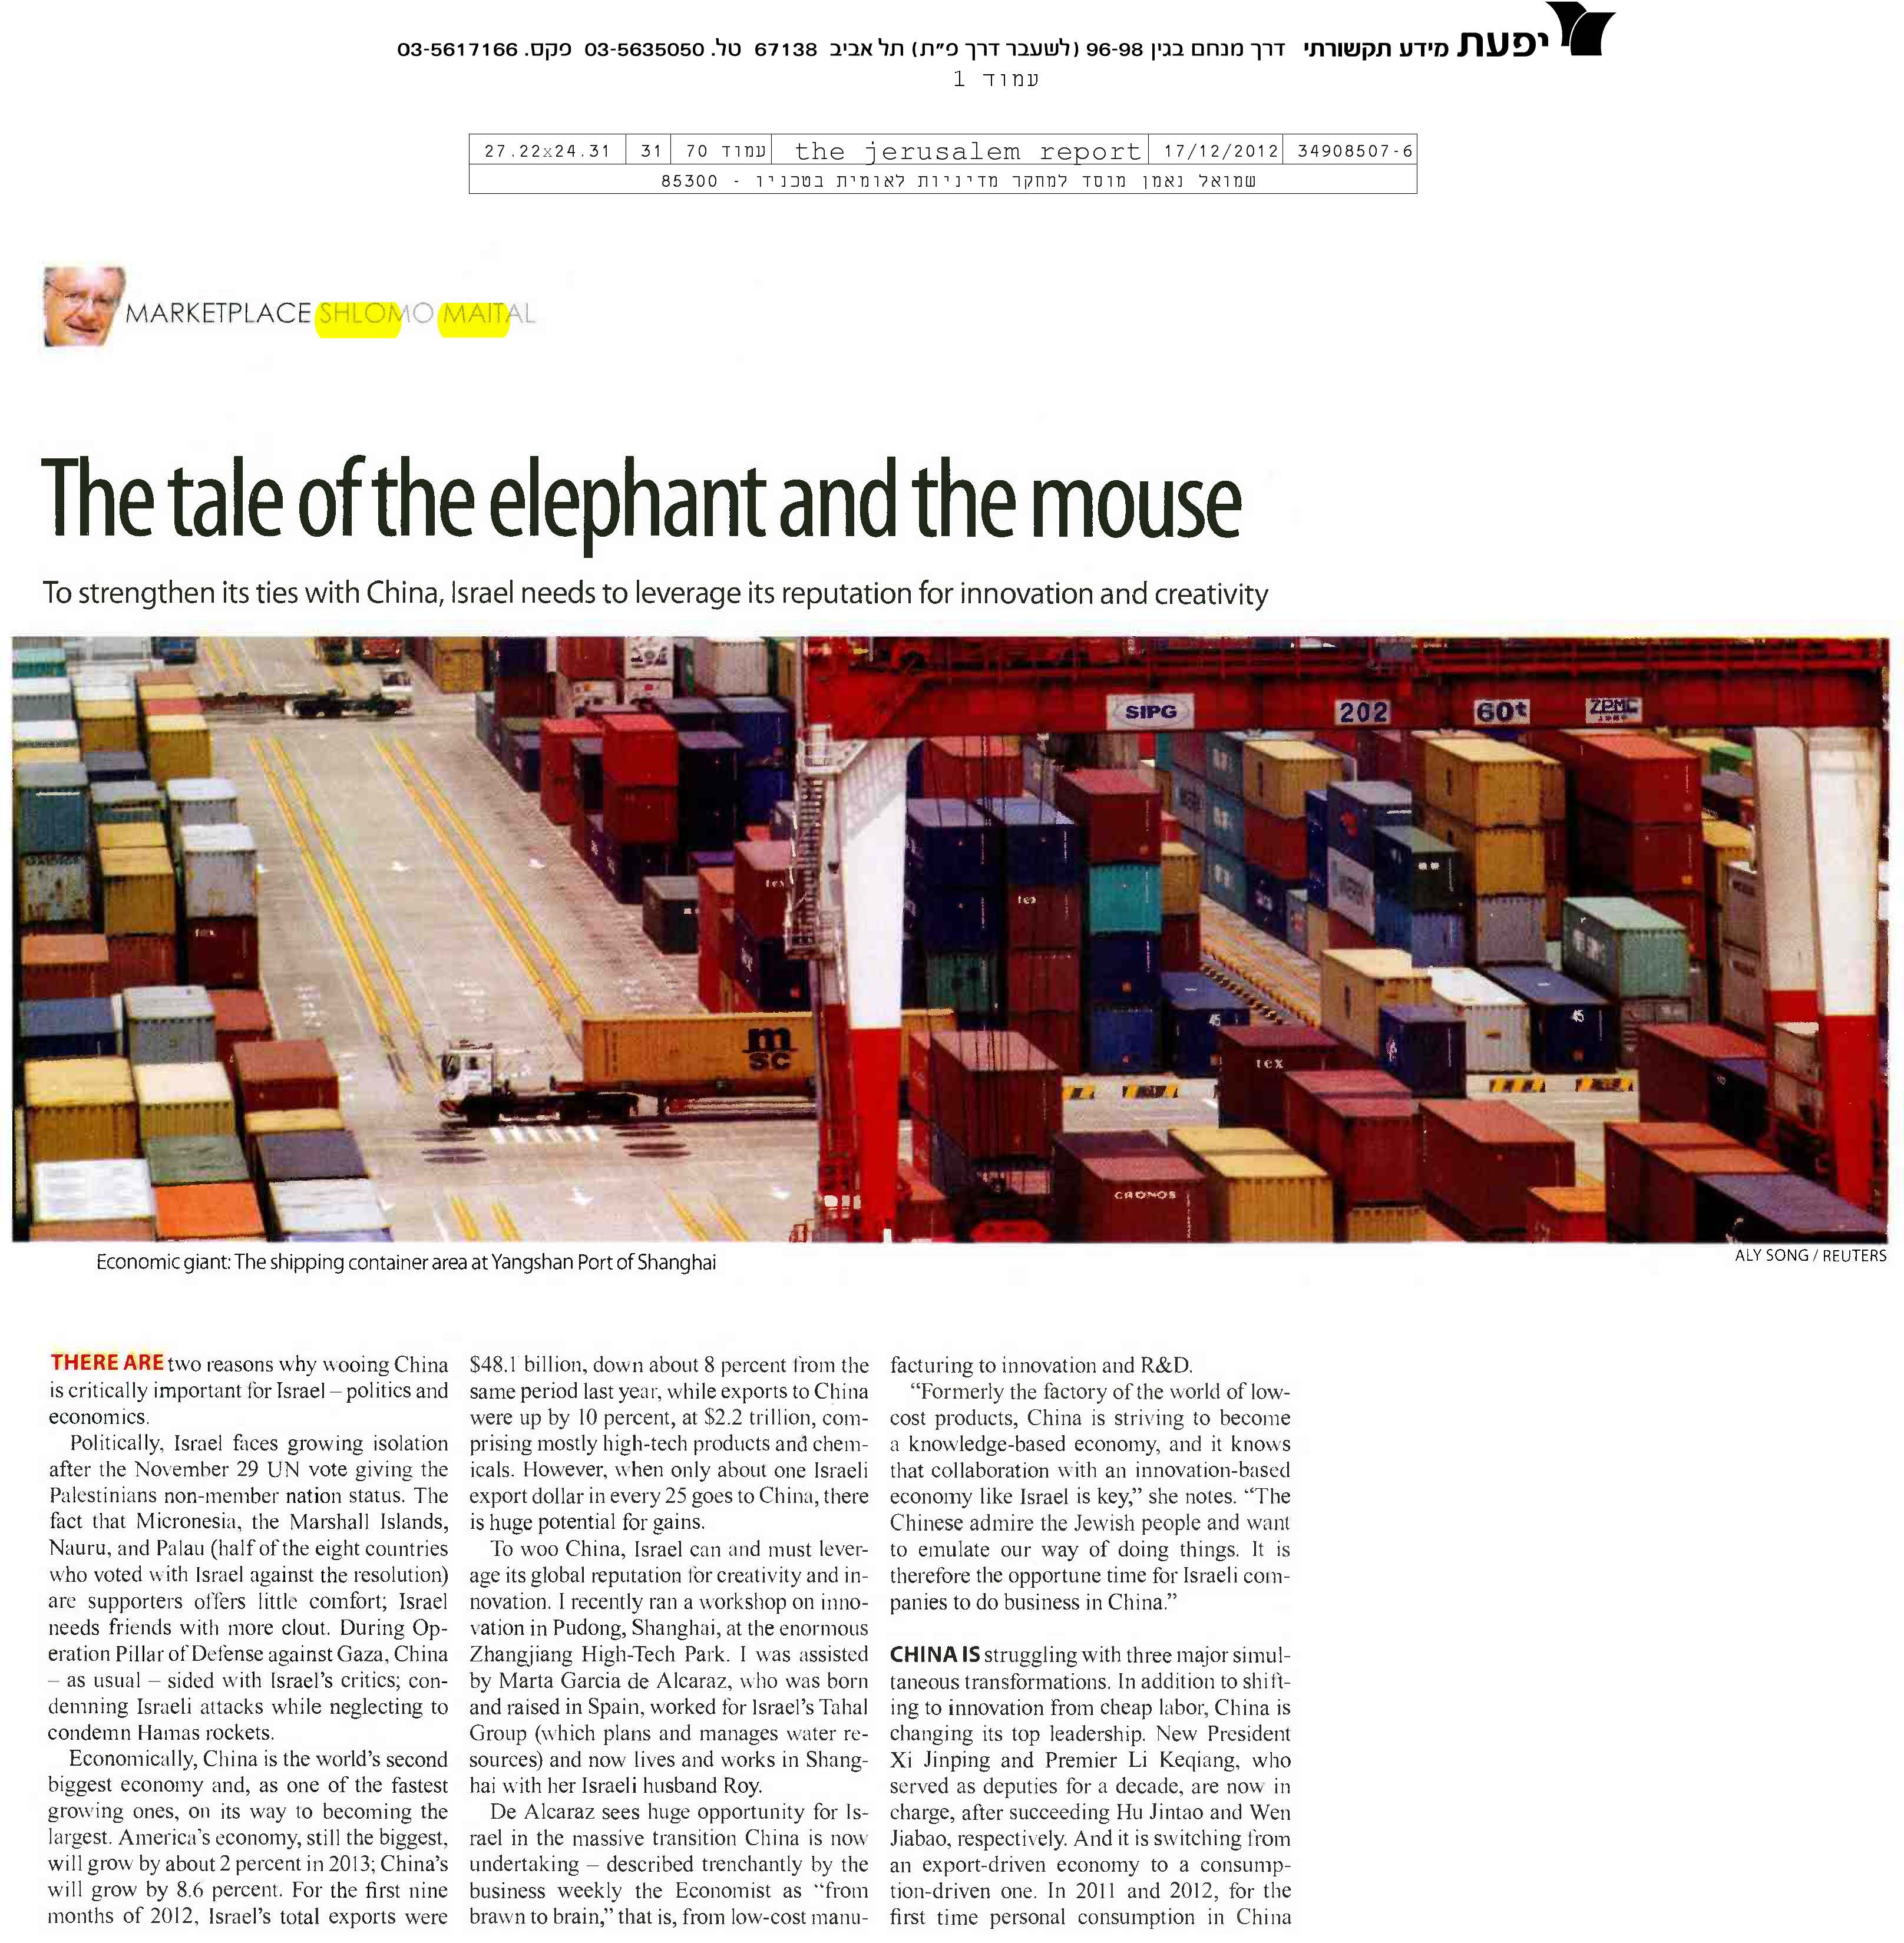 The tale of the elephant and the mouse